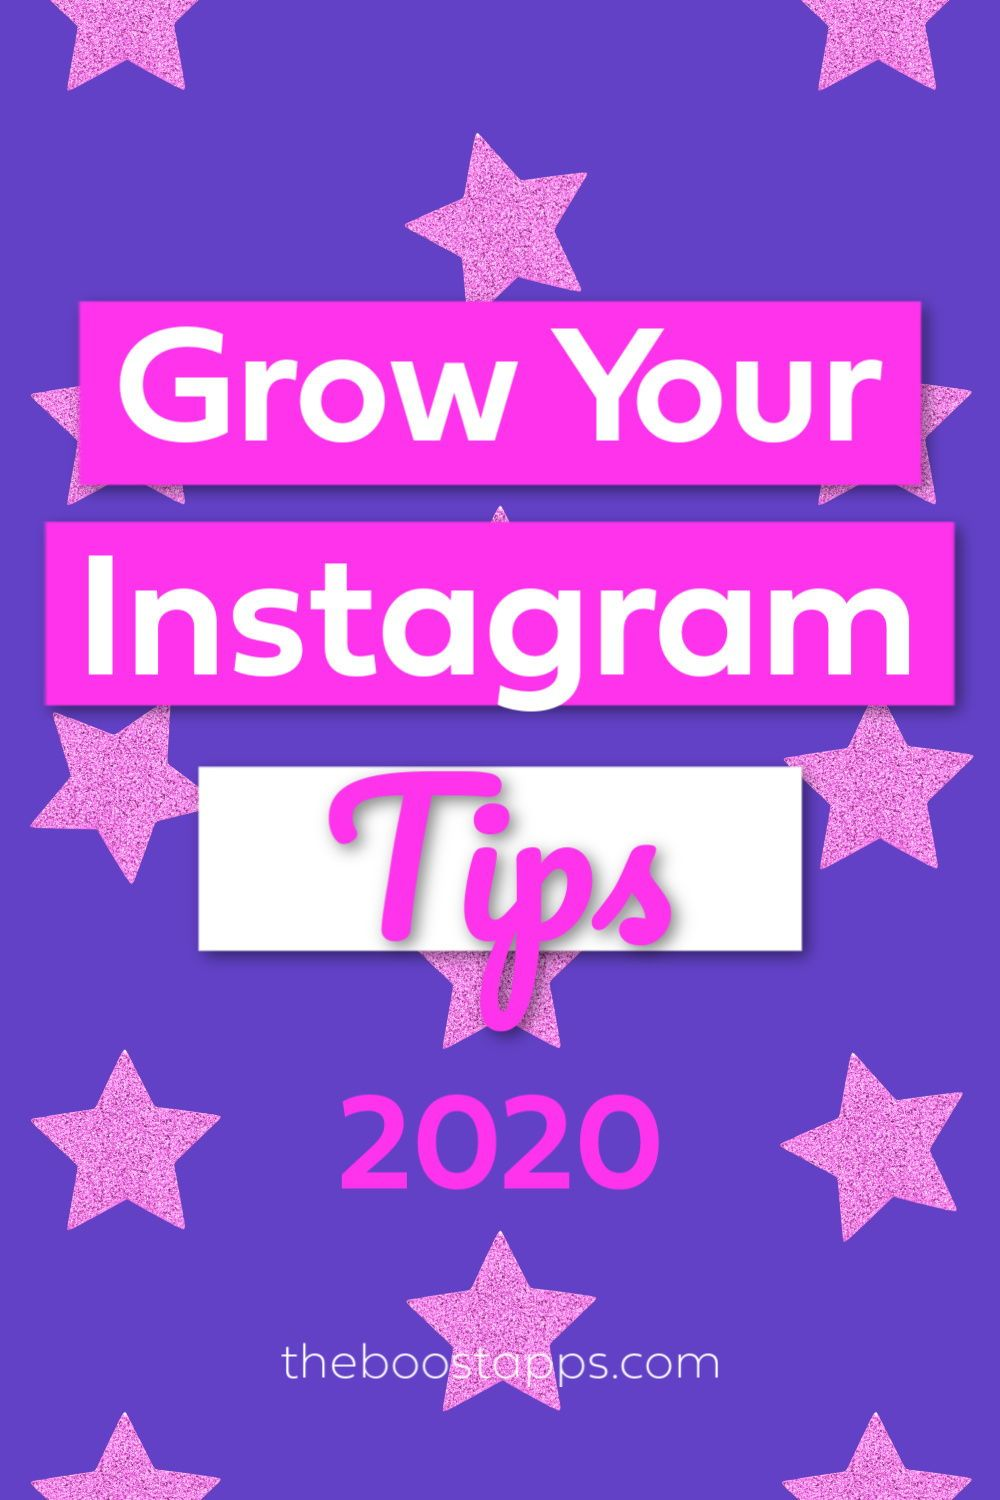 3 Daily Habits for Growing Instagram Followers BoostApps